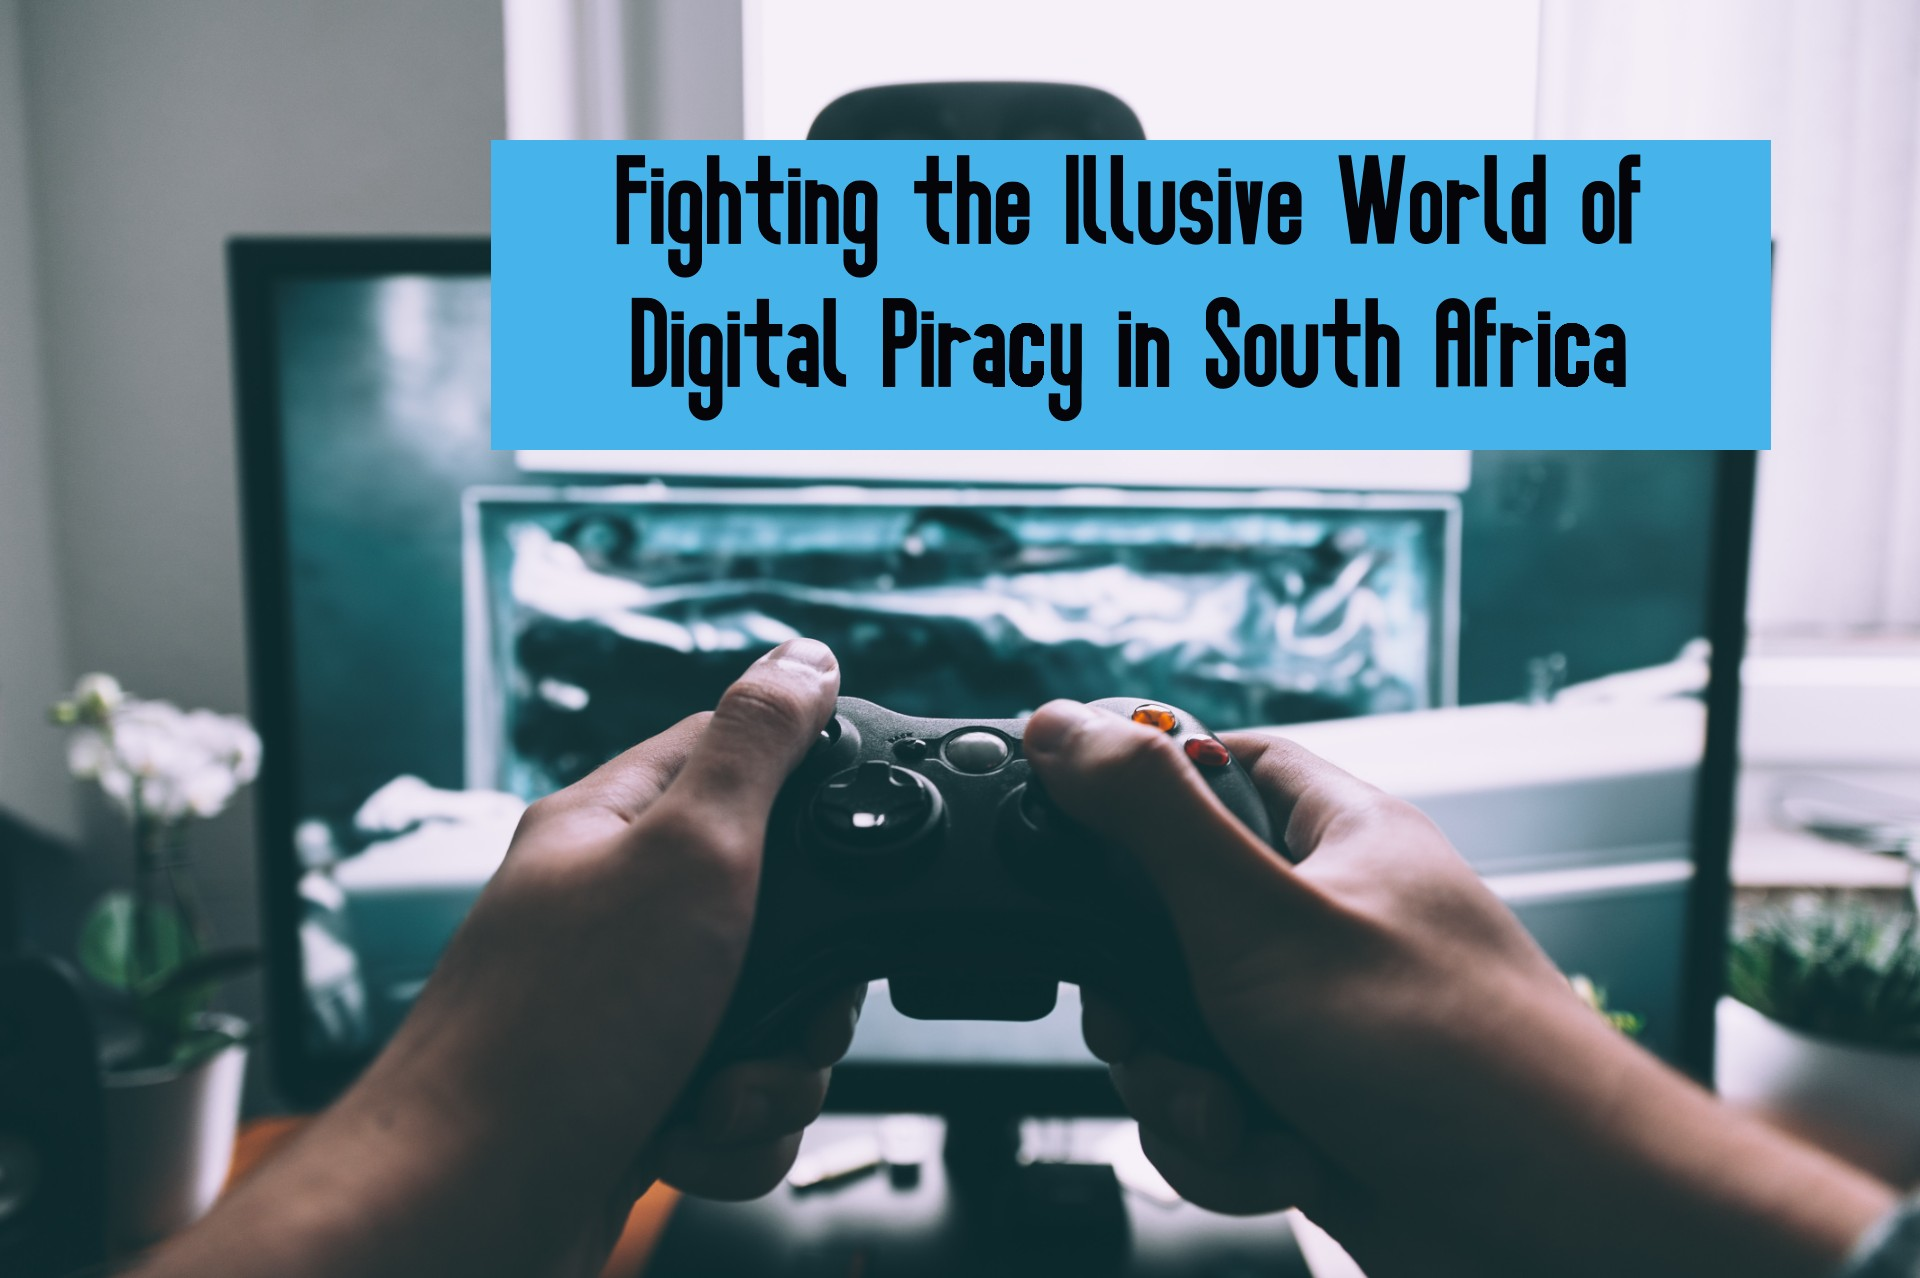 Fighting the Illusive World of Digital Piracy in South Africa